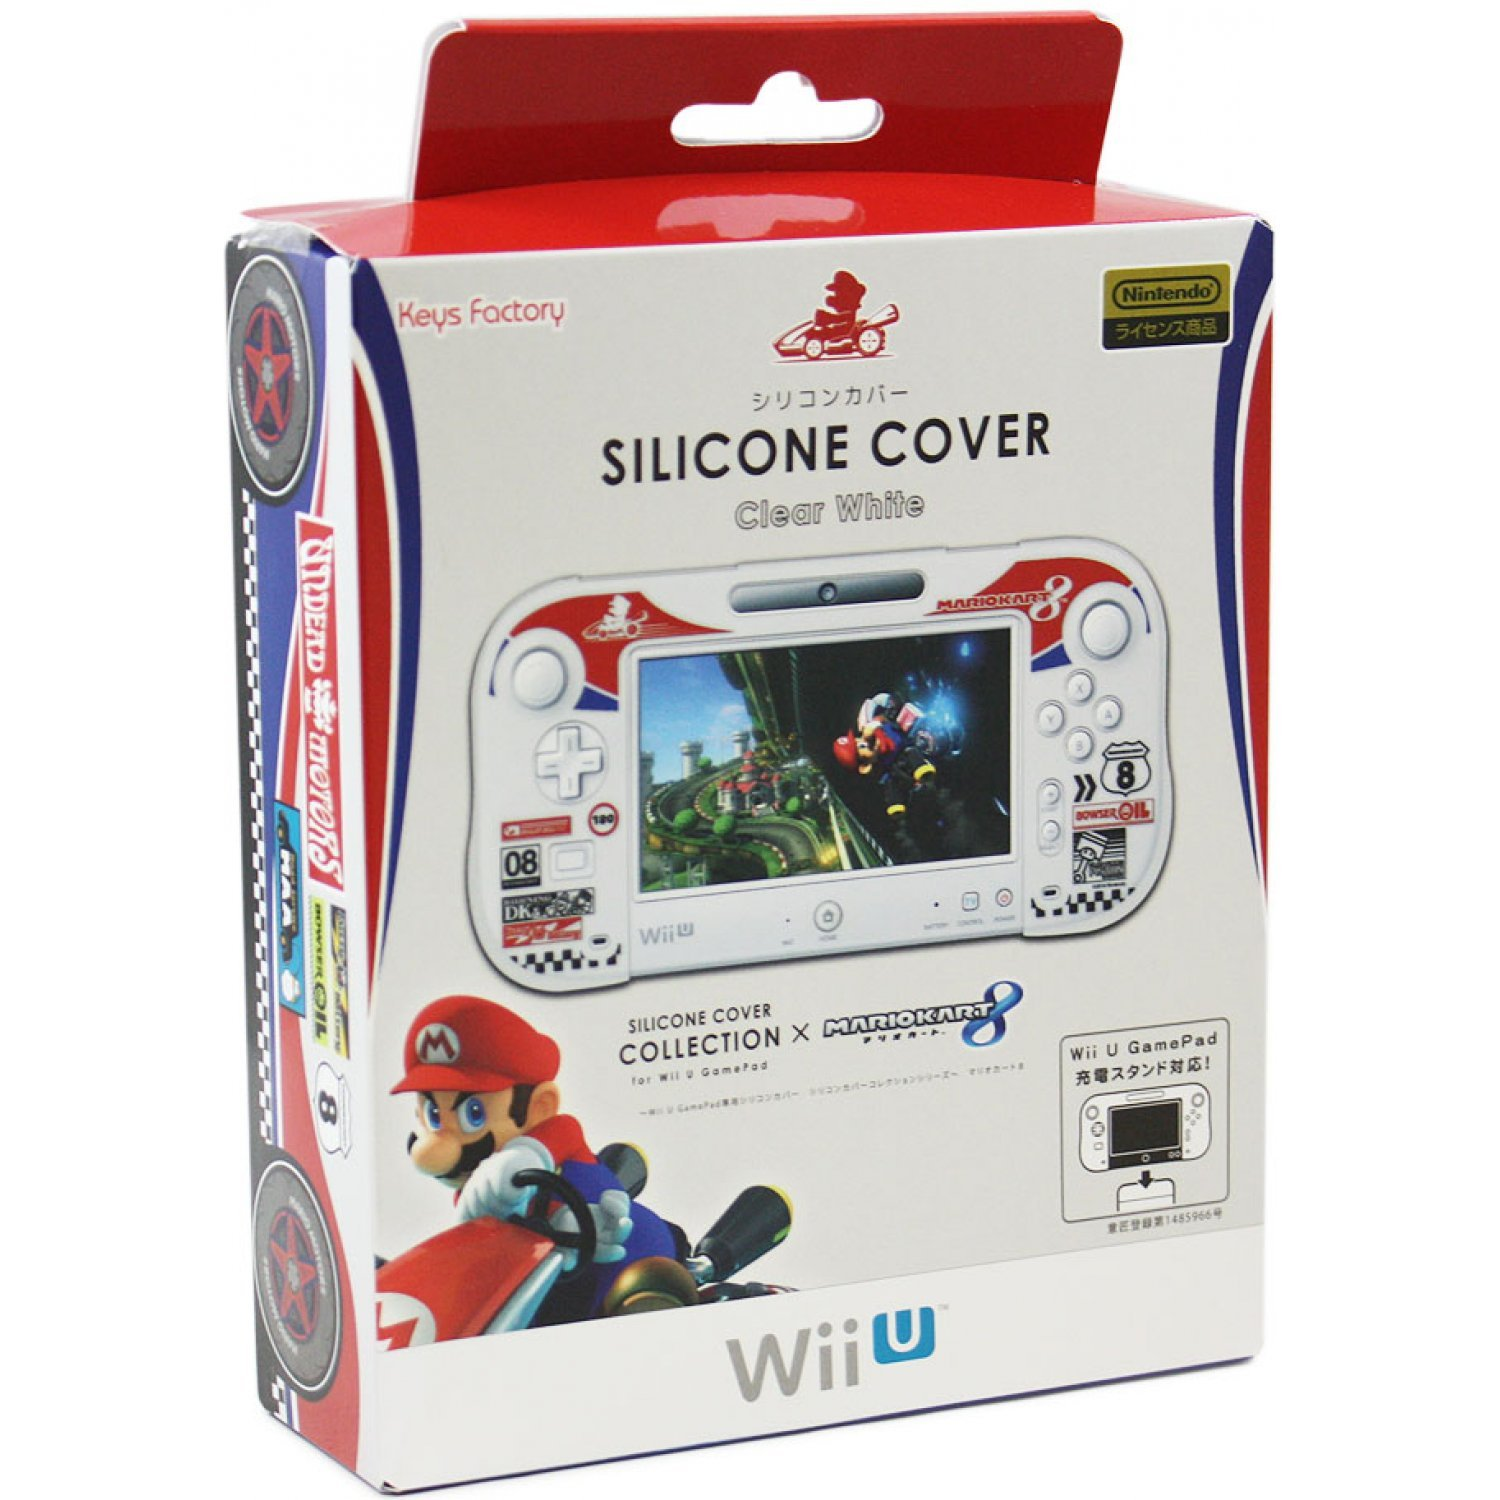 silicon cover for wii u gamepad mario kart 8 type a. Black Bedroom Furniture Sets. Home Design Ideas